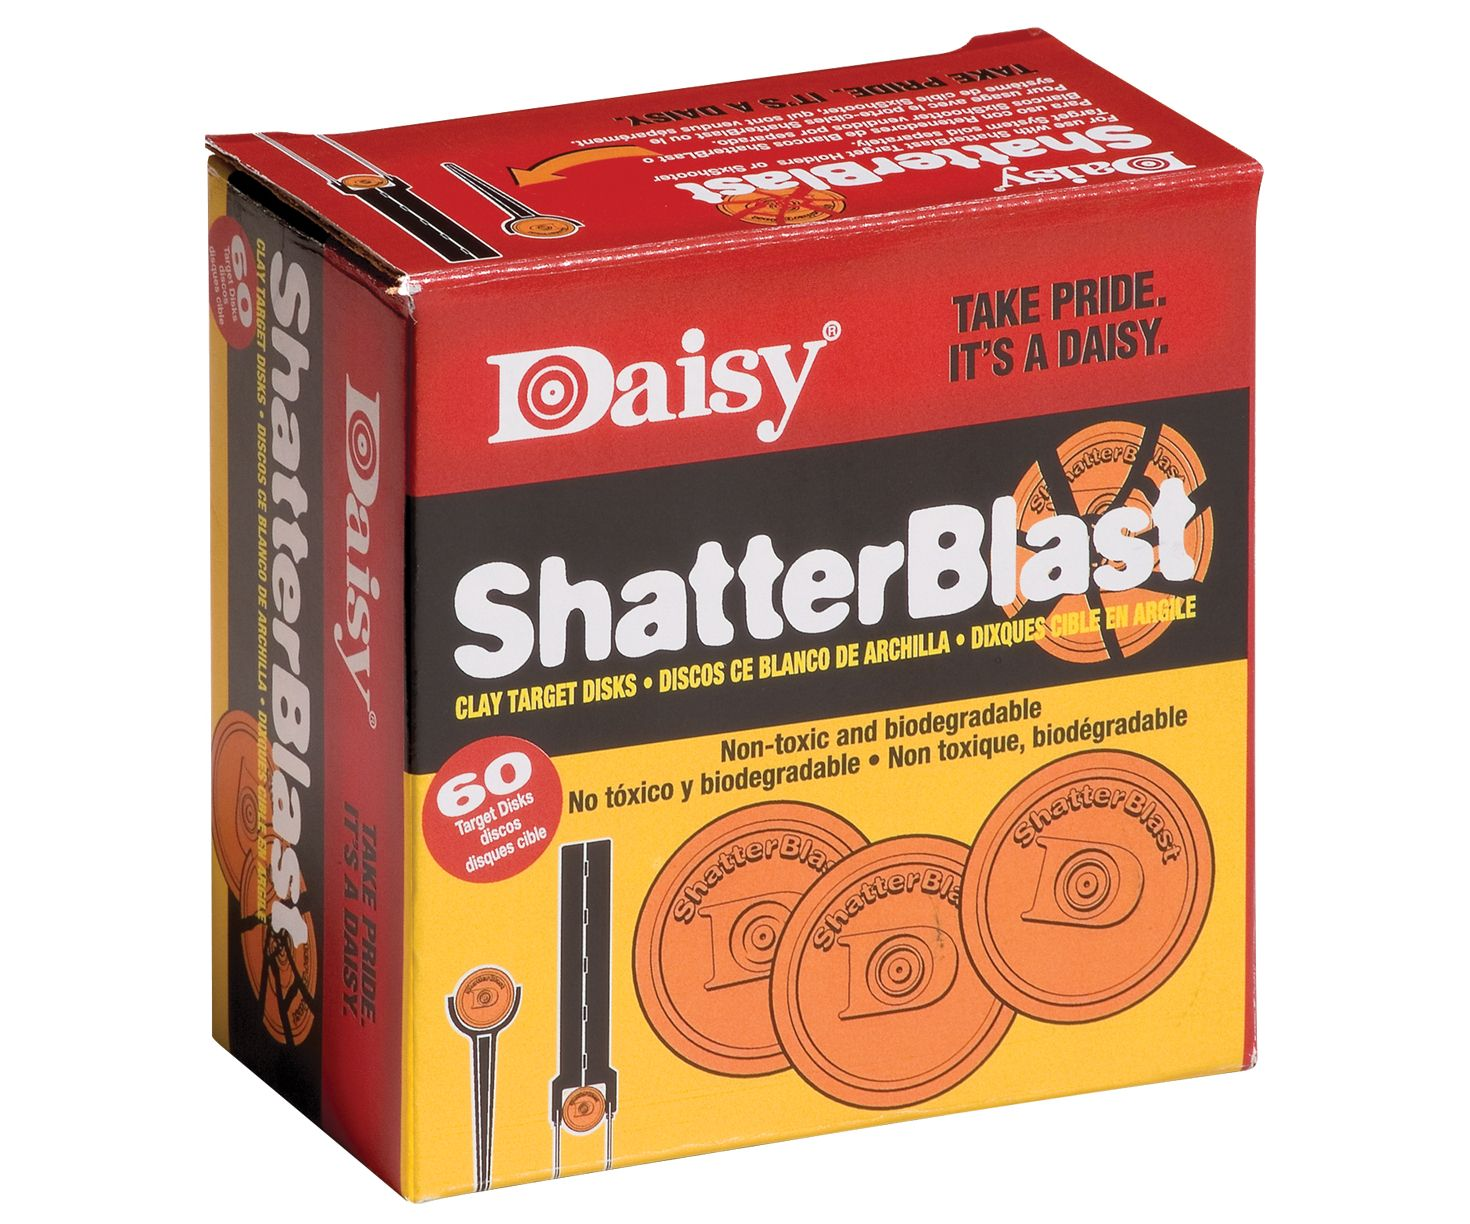 SHATTERBLAST TARGETS BOX FROM DAISY FOR AIR PISTOLS